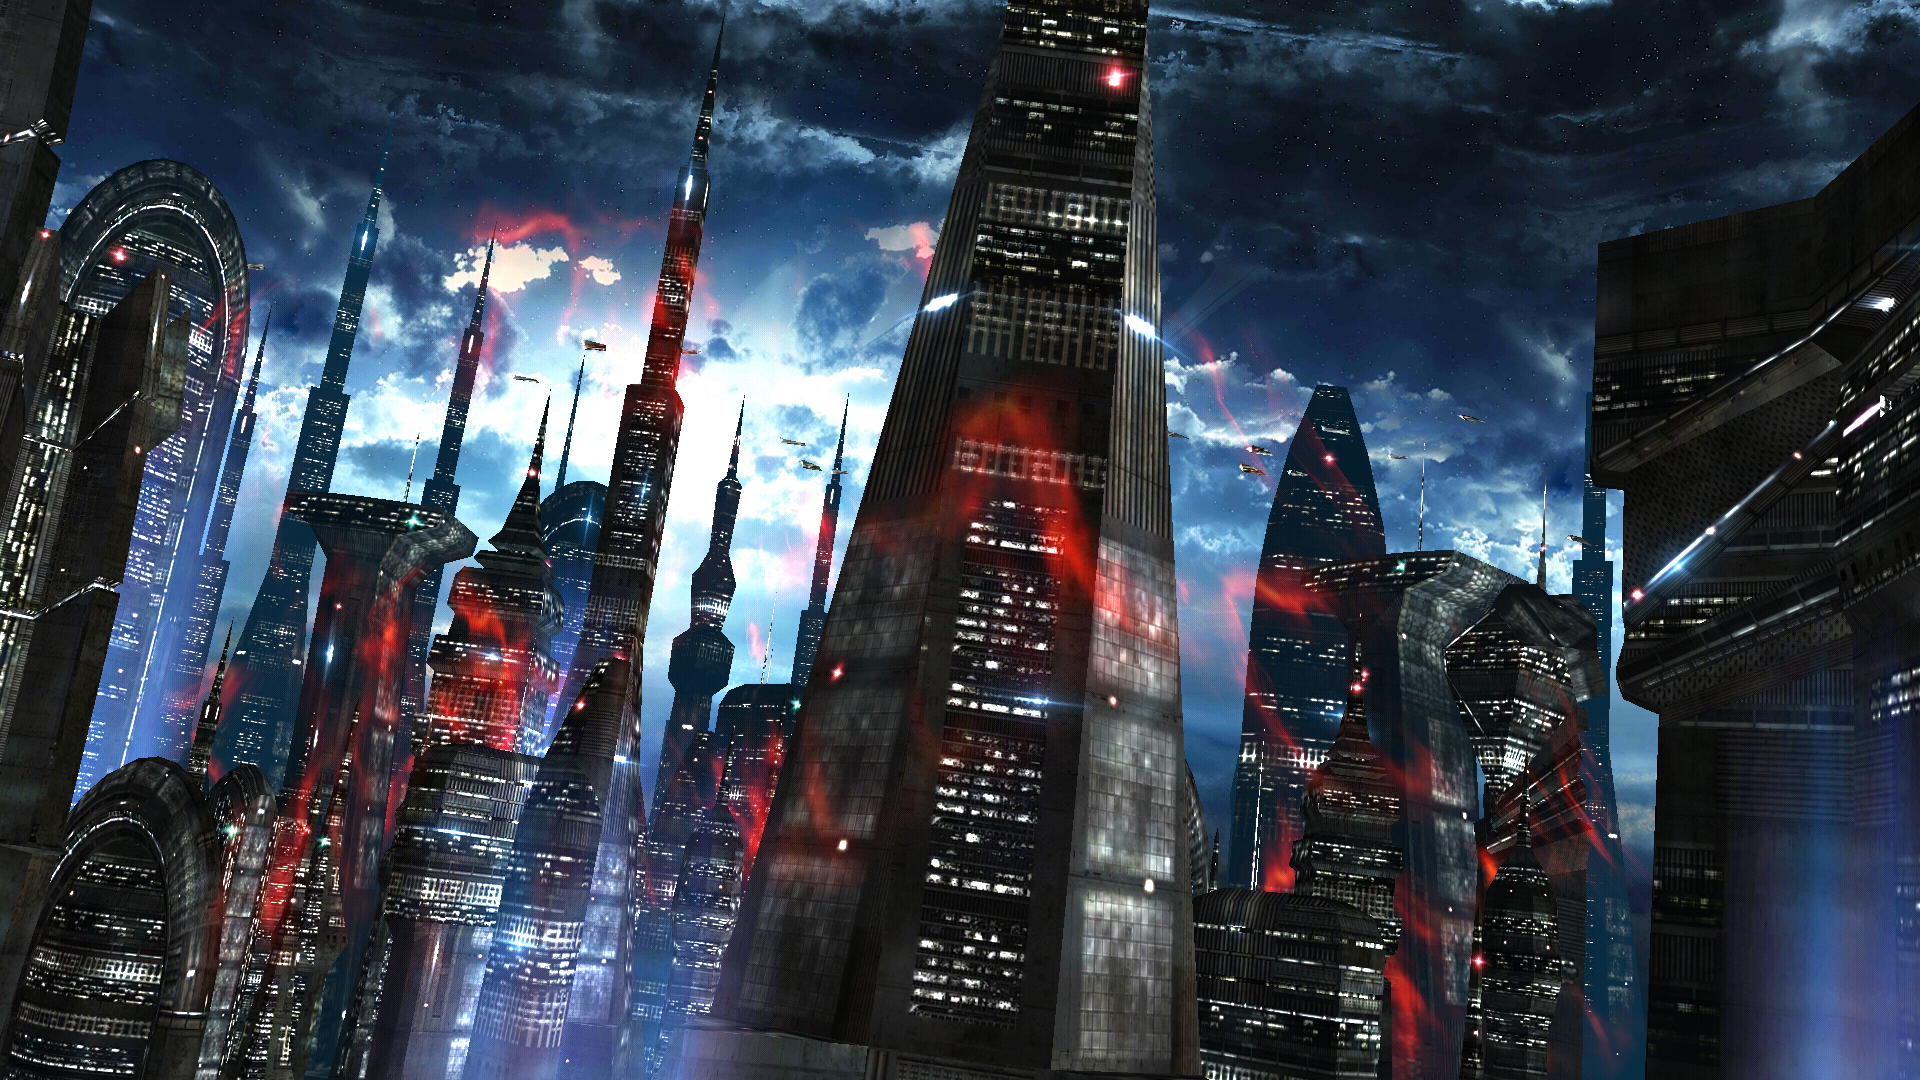 Space Colony Turns Your Home Screen Into An Alien Cityscape